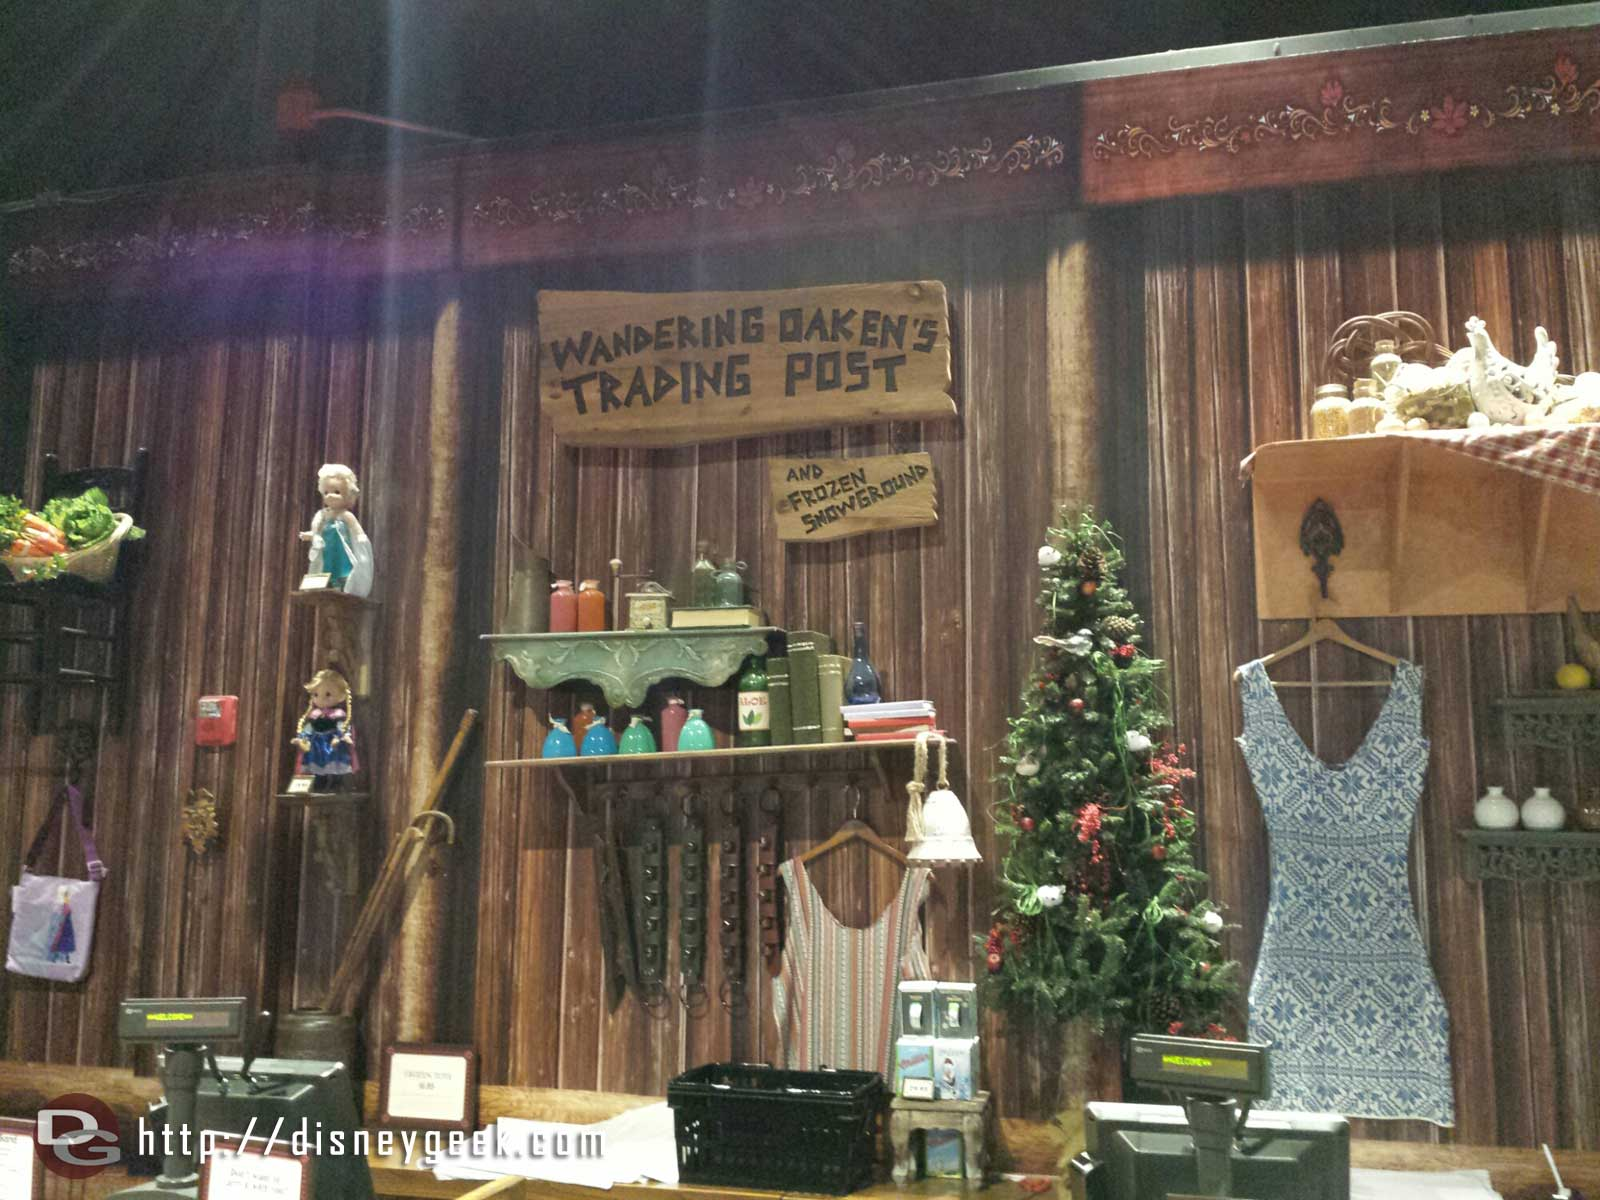 Wandering Oaken's Trading Post aka #Frozen central